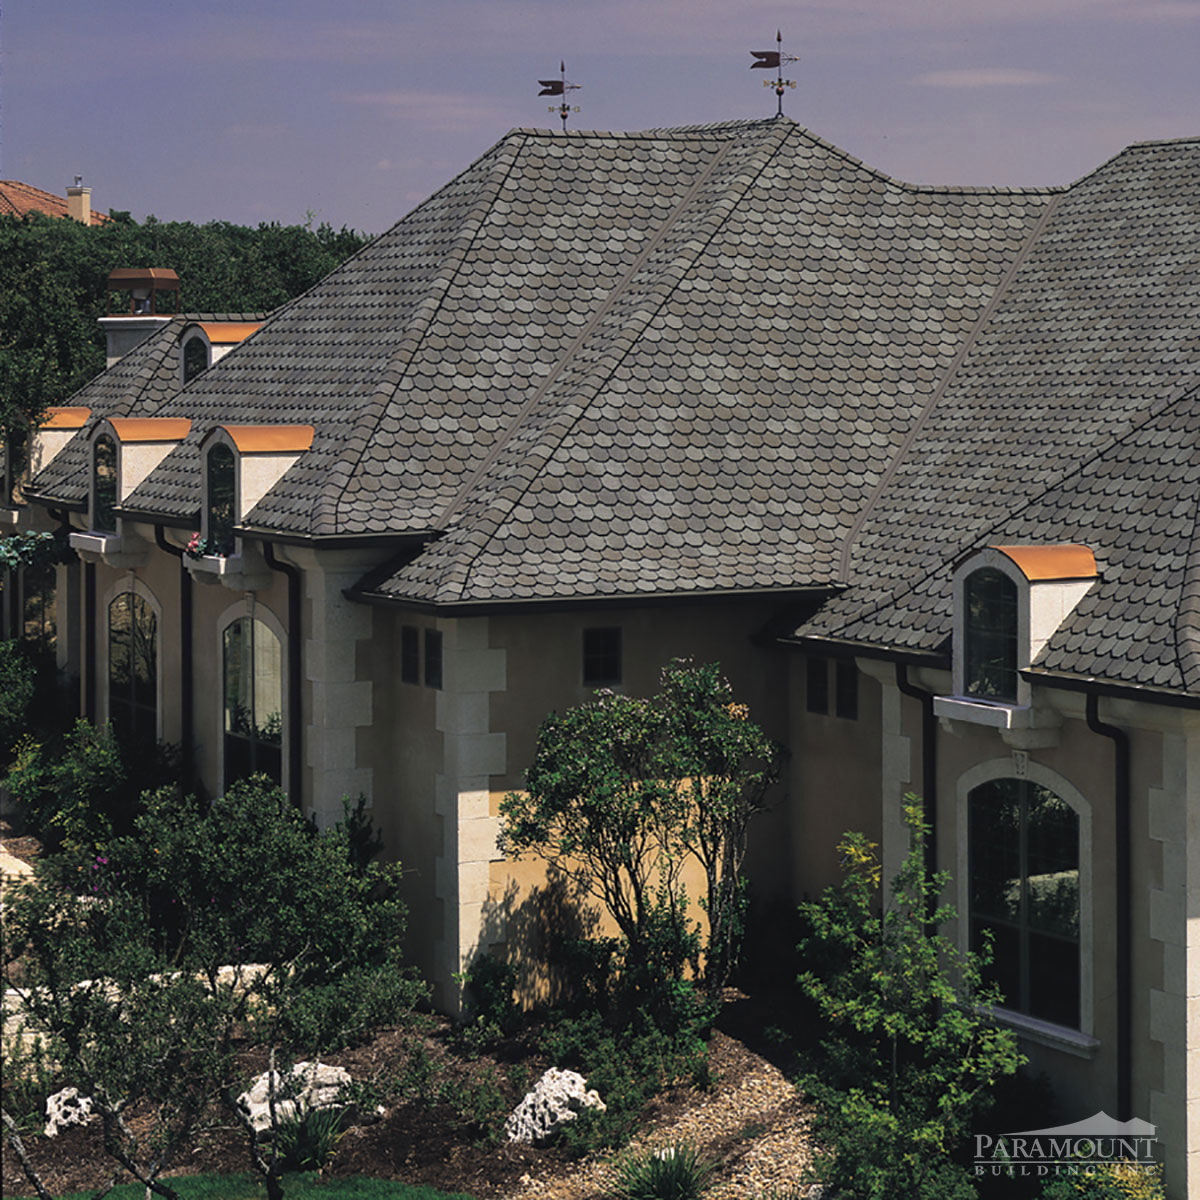 Certainteed Carriage House Shingle Roof Installation